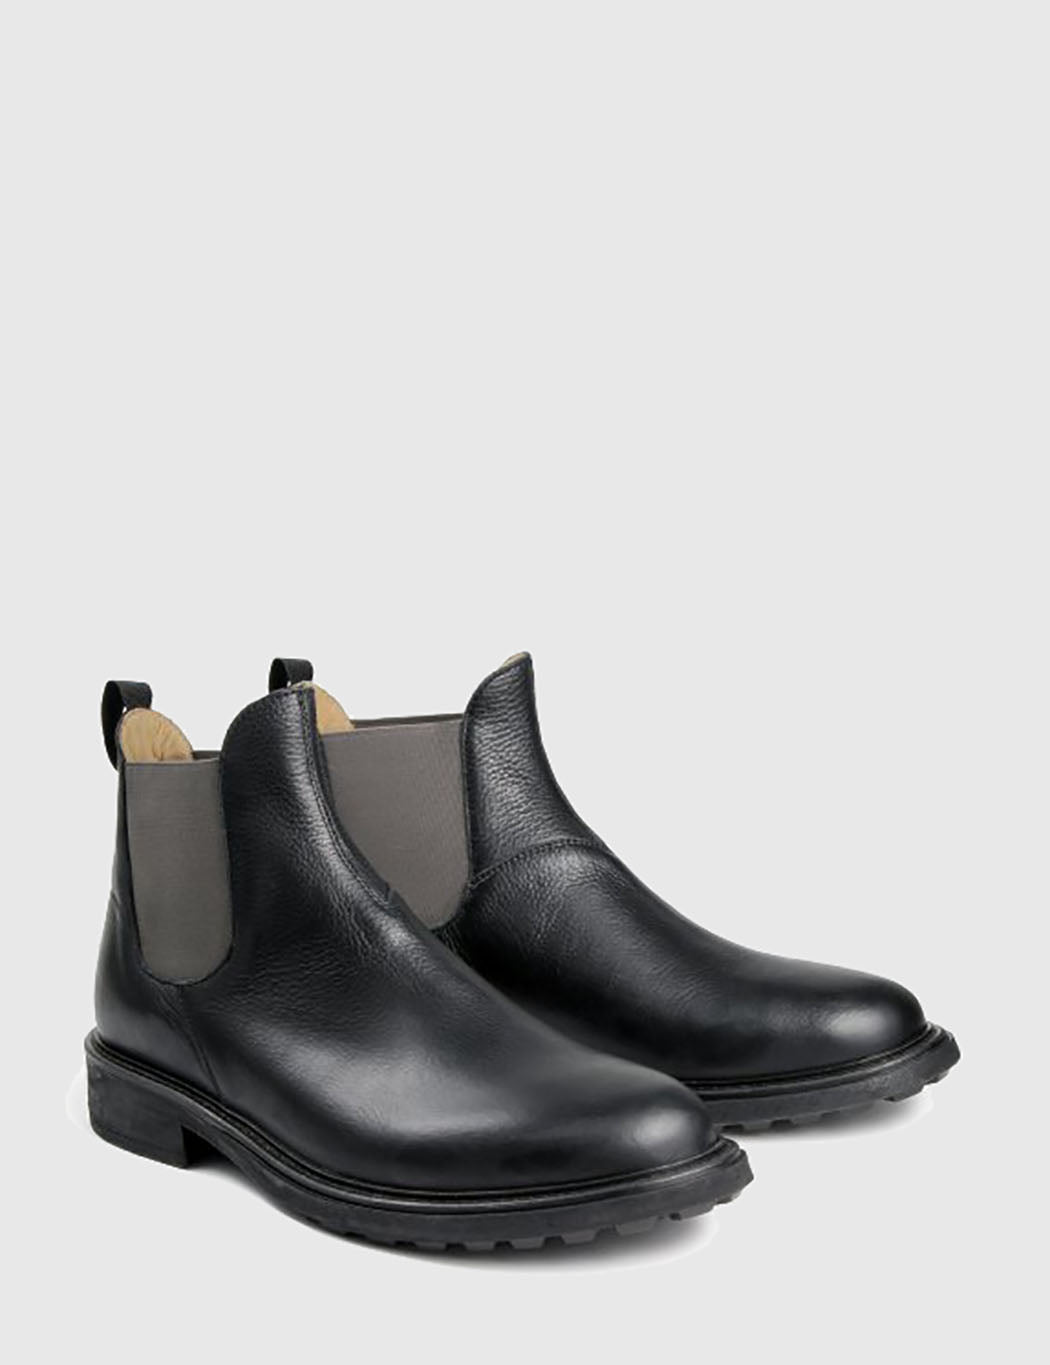 Hudson Caslon Chelsea Boots (Leather) - Black